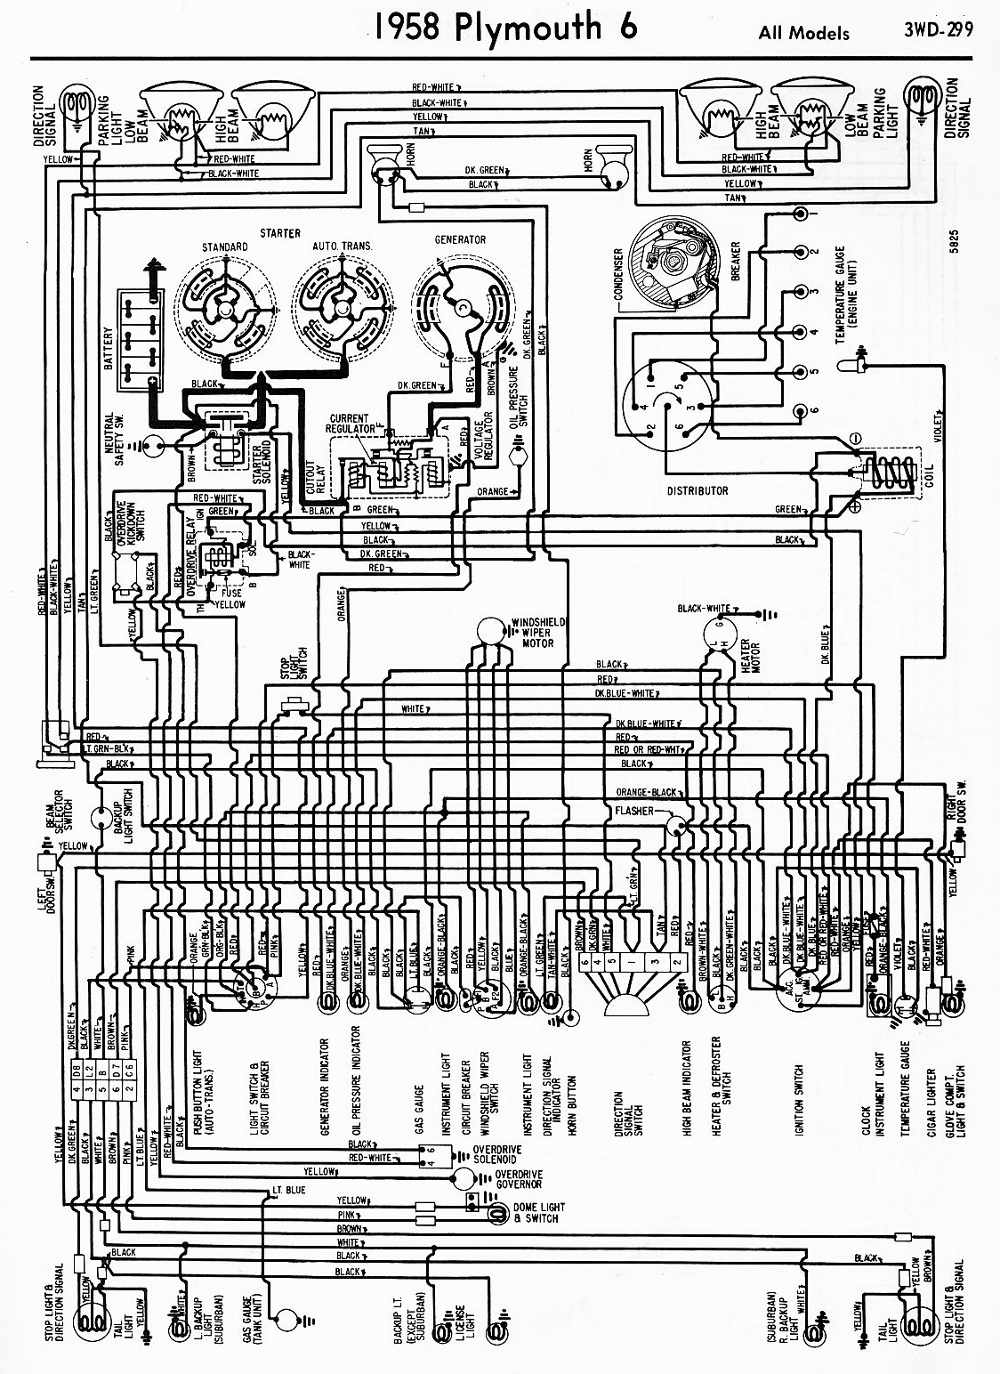 Proa  1958 Plymouth 6 All Models Wiring Diagram